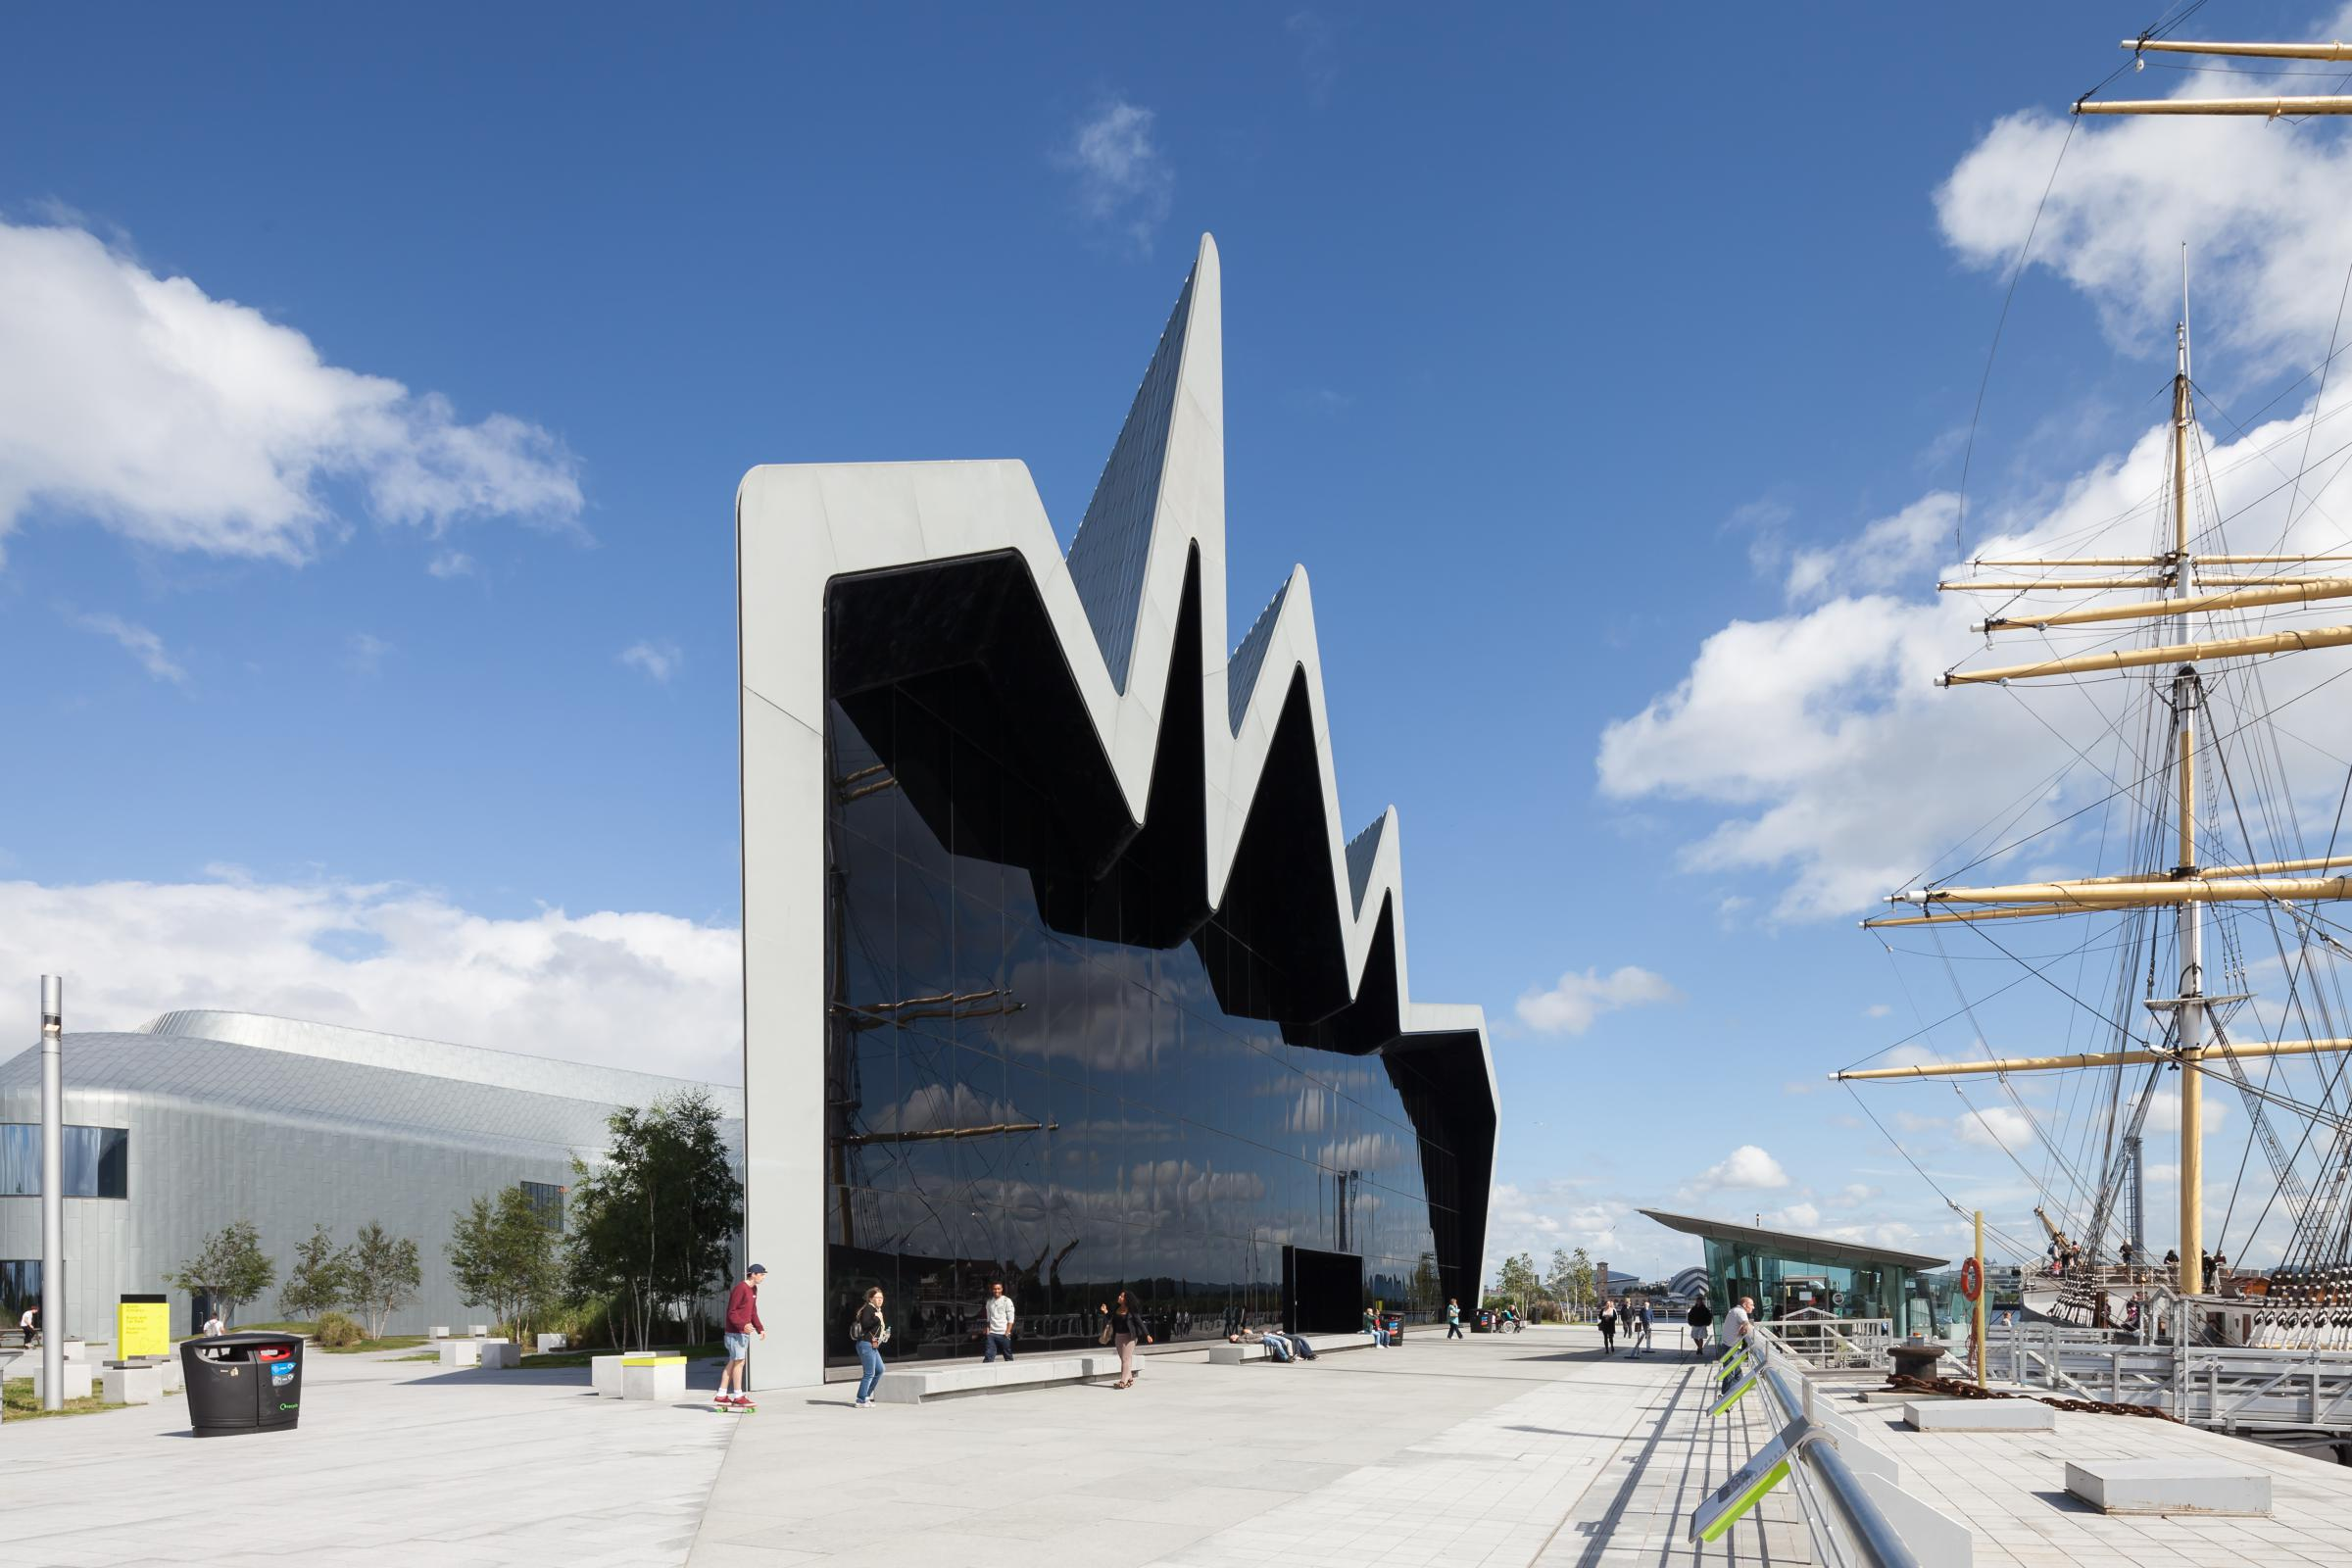 Photograph of Riverside Museum of Transport, designed by Zaha Hadid Architects and located in Glasgow, United Kingdom